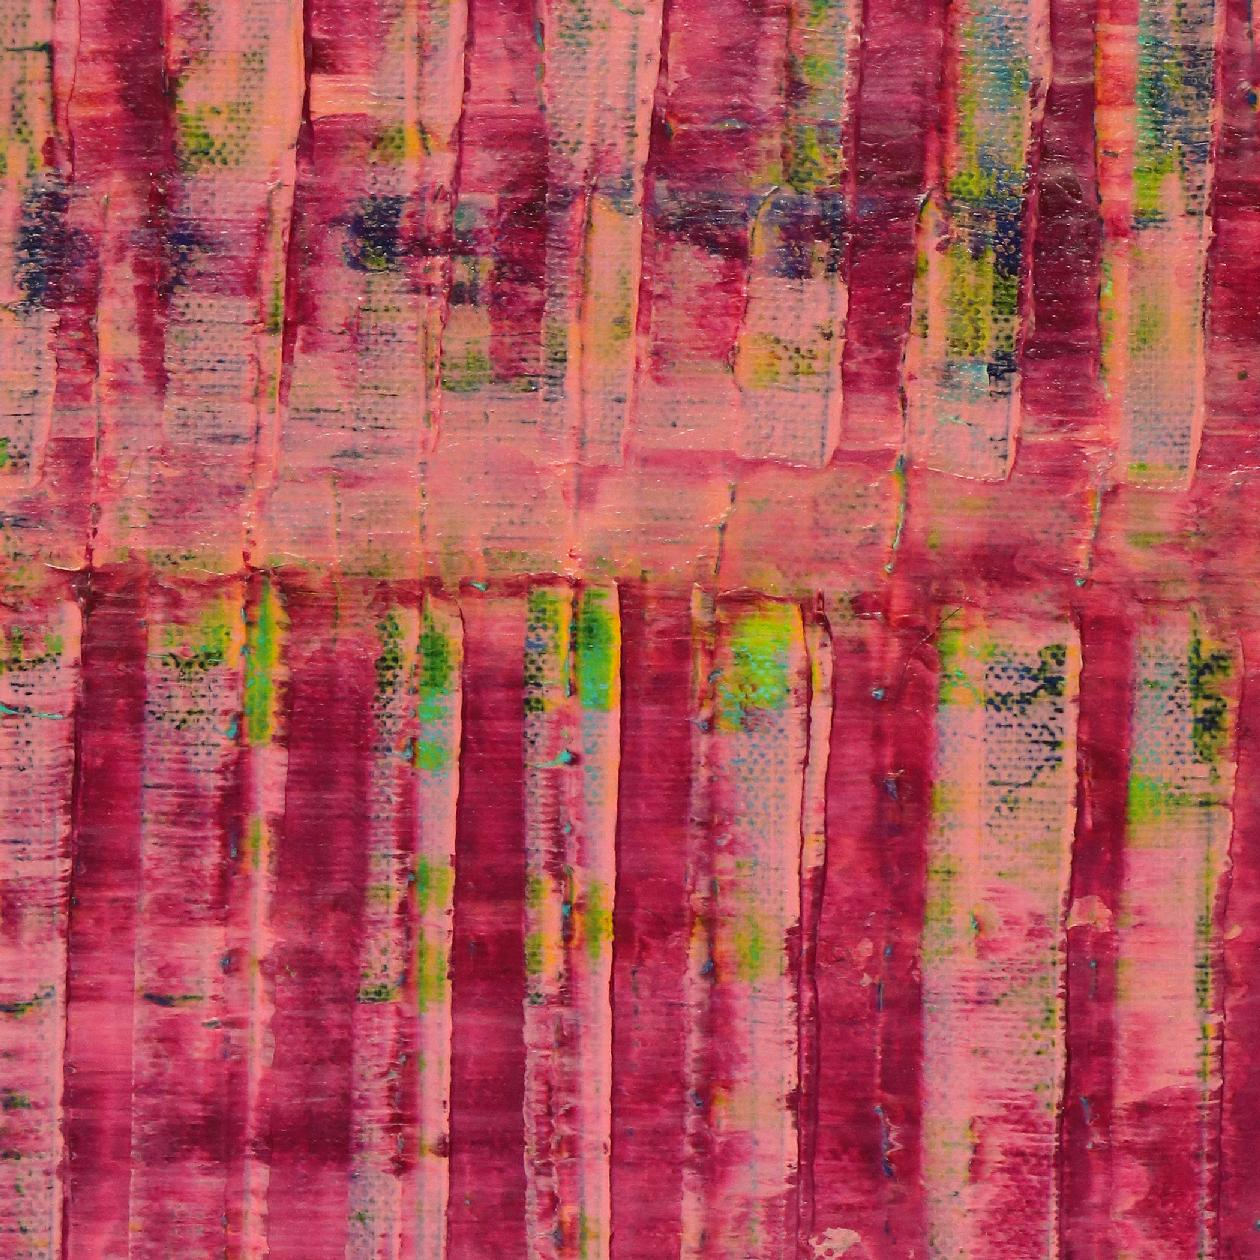 Pink spectra and lights 2 (2020) by Nestor Toro - SOLD